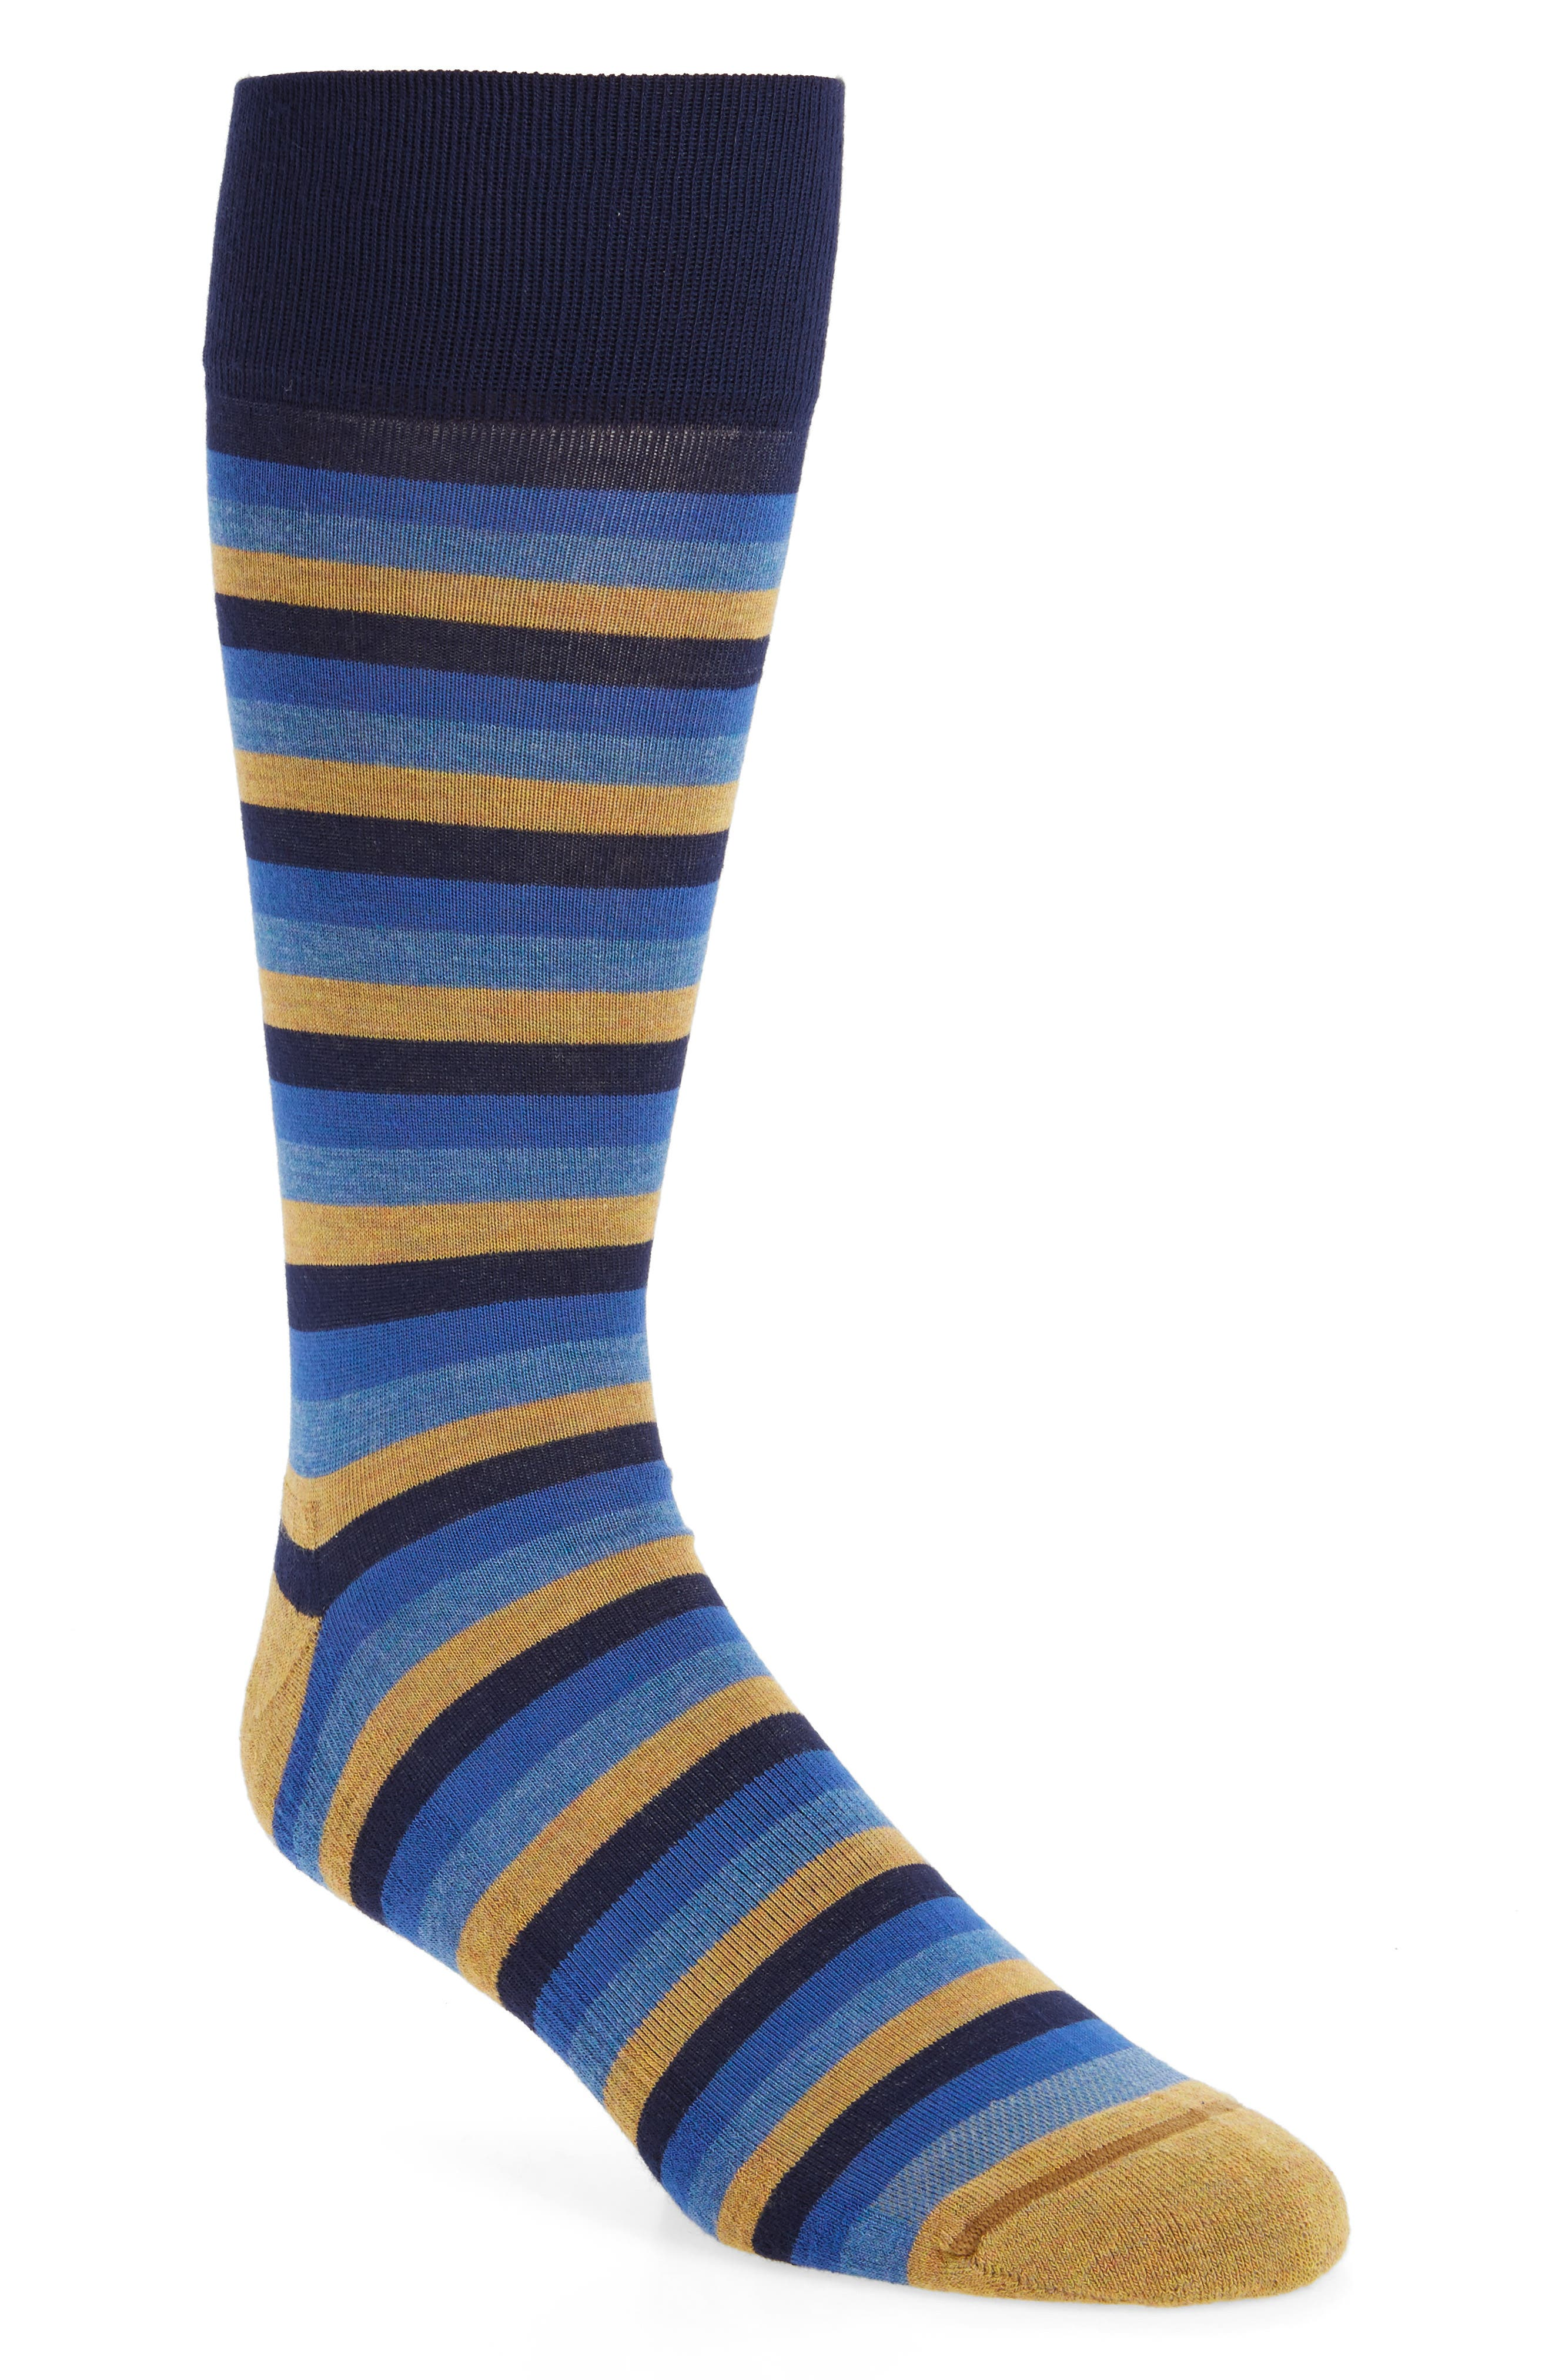 Stripe Socks,                         Main,                         color, Navy